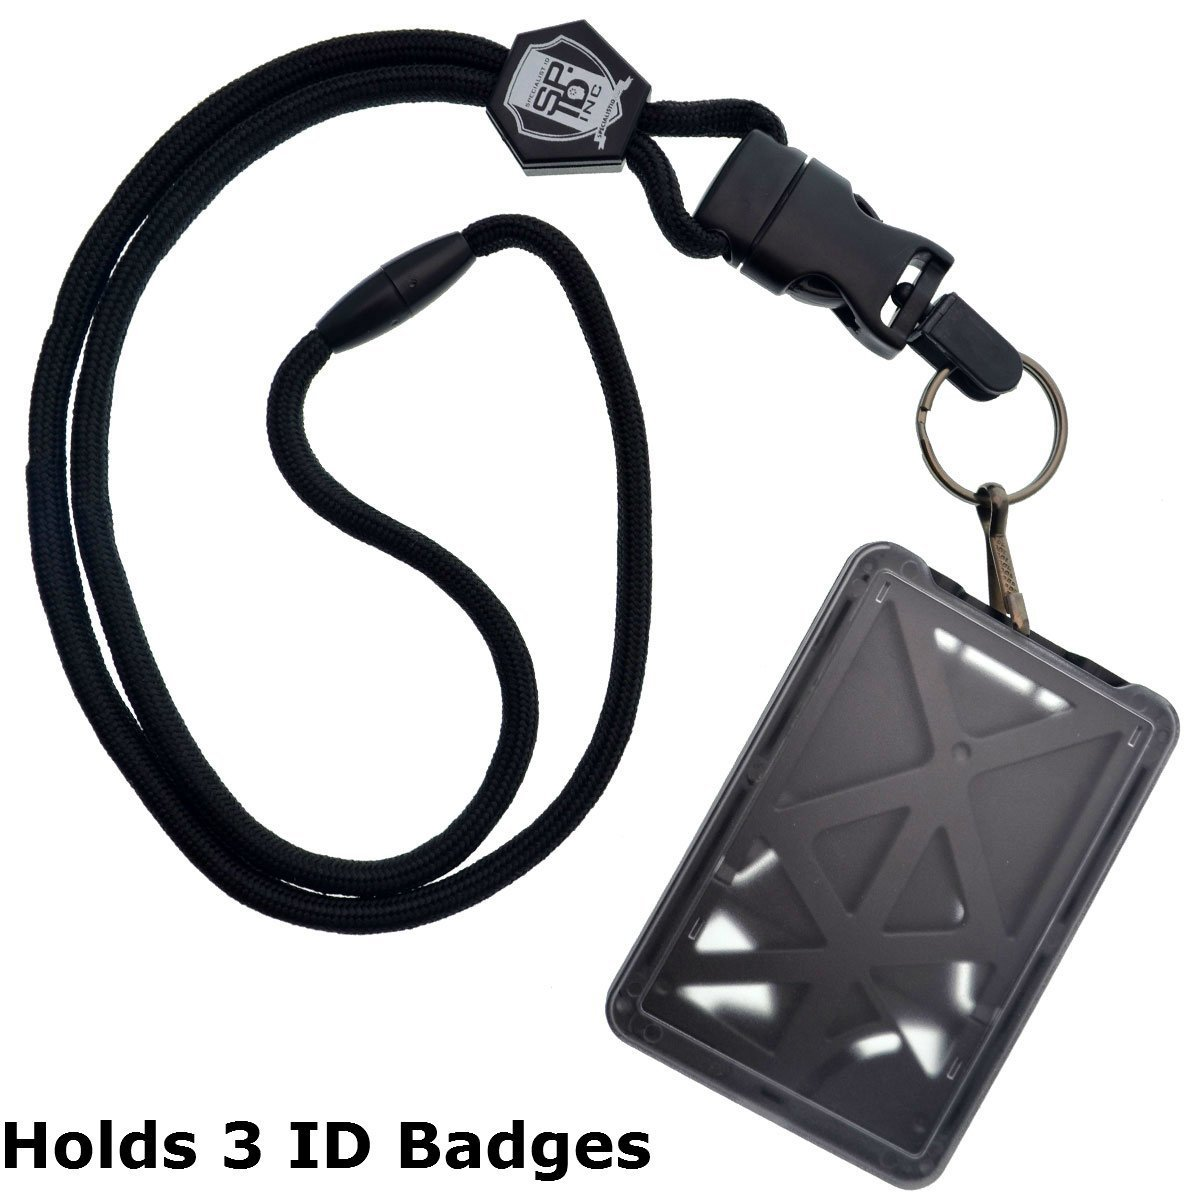 Top Loading THREE ID Card Badge Holder with Heavy Duty Lanyard w/Detachable Metal Clip and Key Ring by Specialist ID, Sold Individually (One Holder / 3 Cards Inside) (Black) SPID-9070